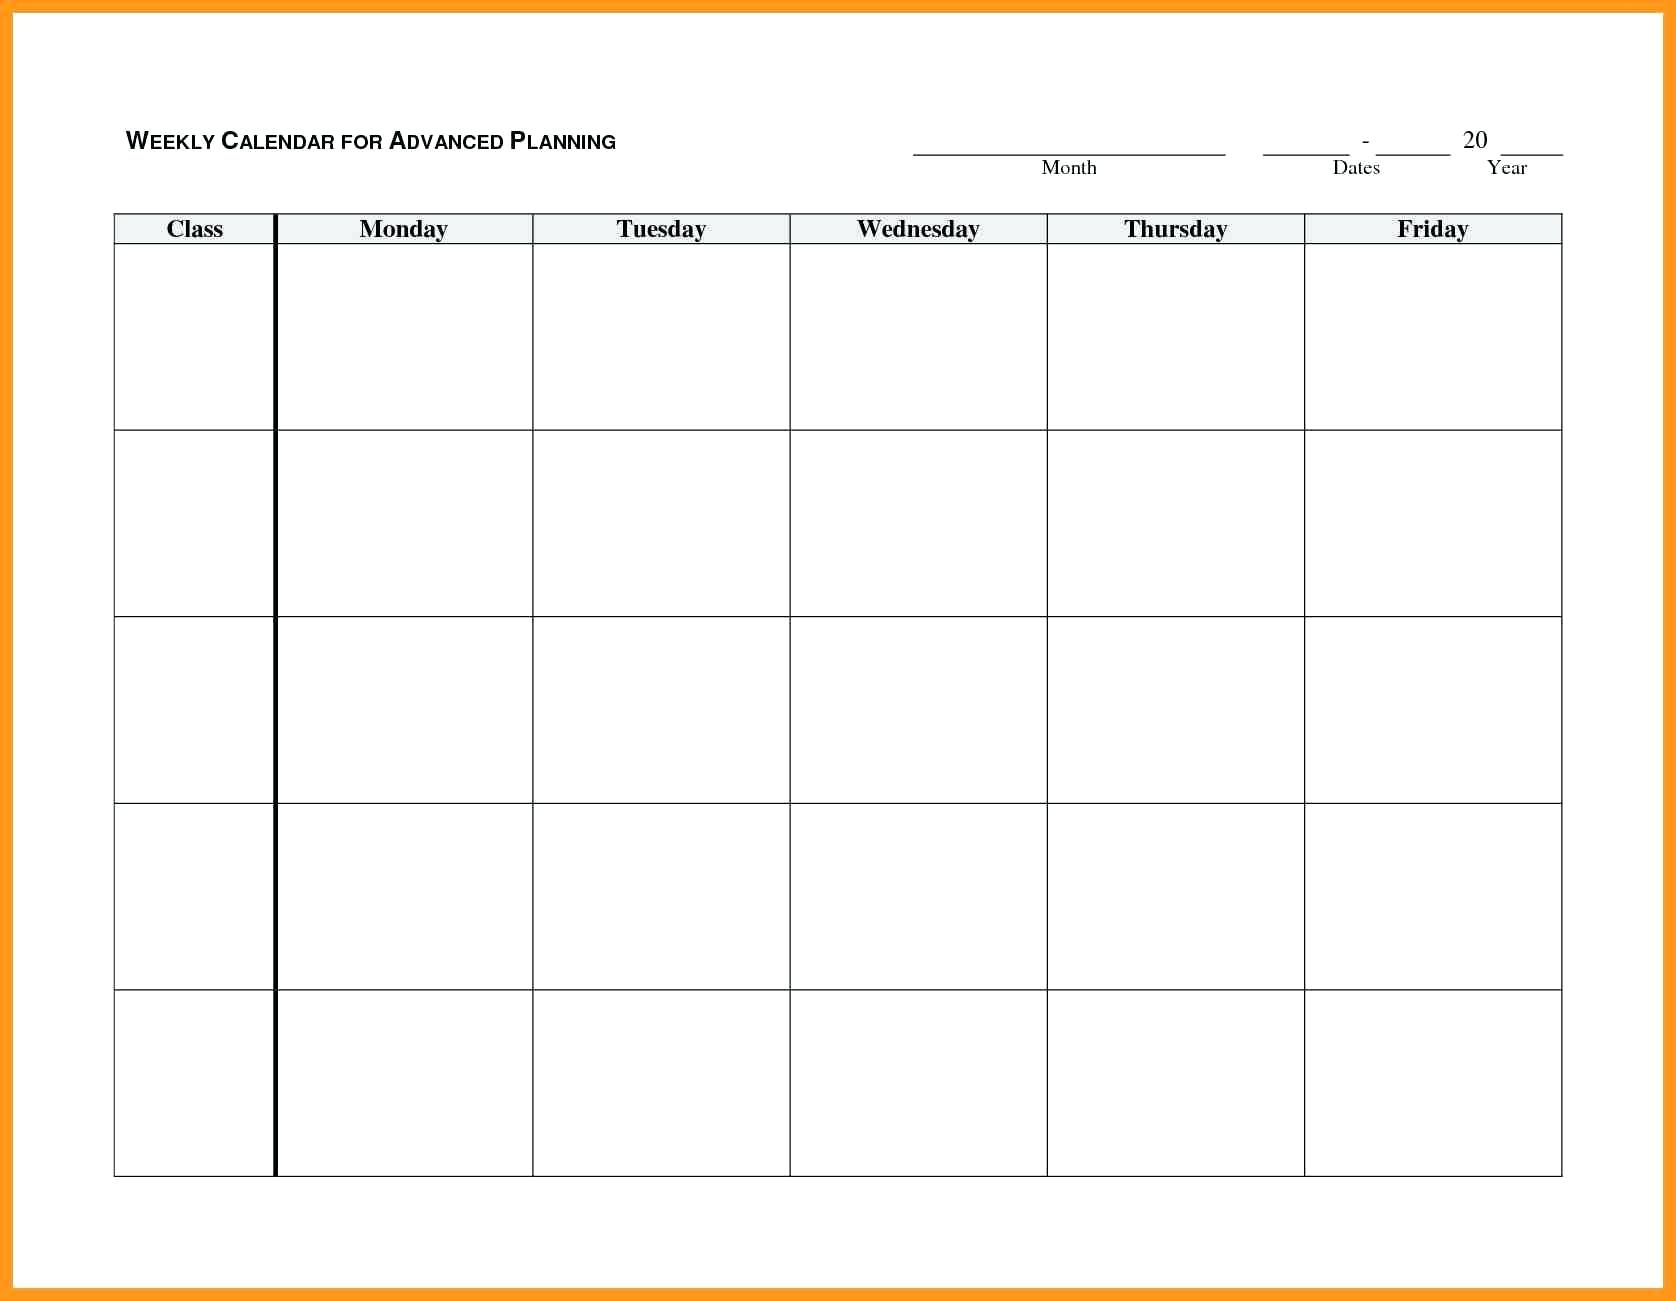 Blank Weekly Ndar Monday Through Friday Template Word Free Printable within Blank Weekly Monday Through Friday Calendar Template